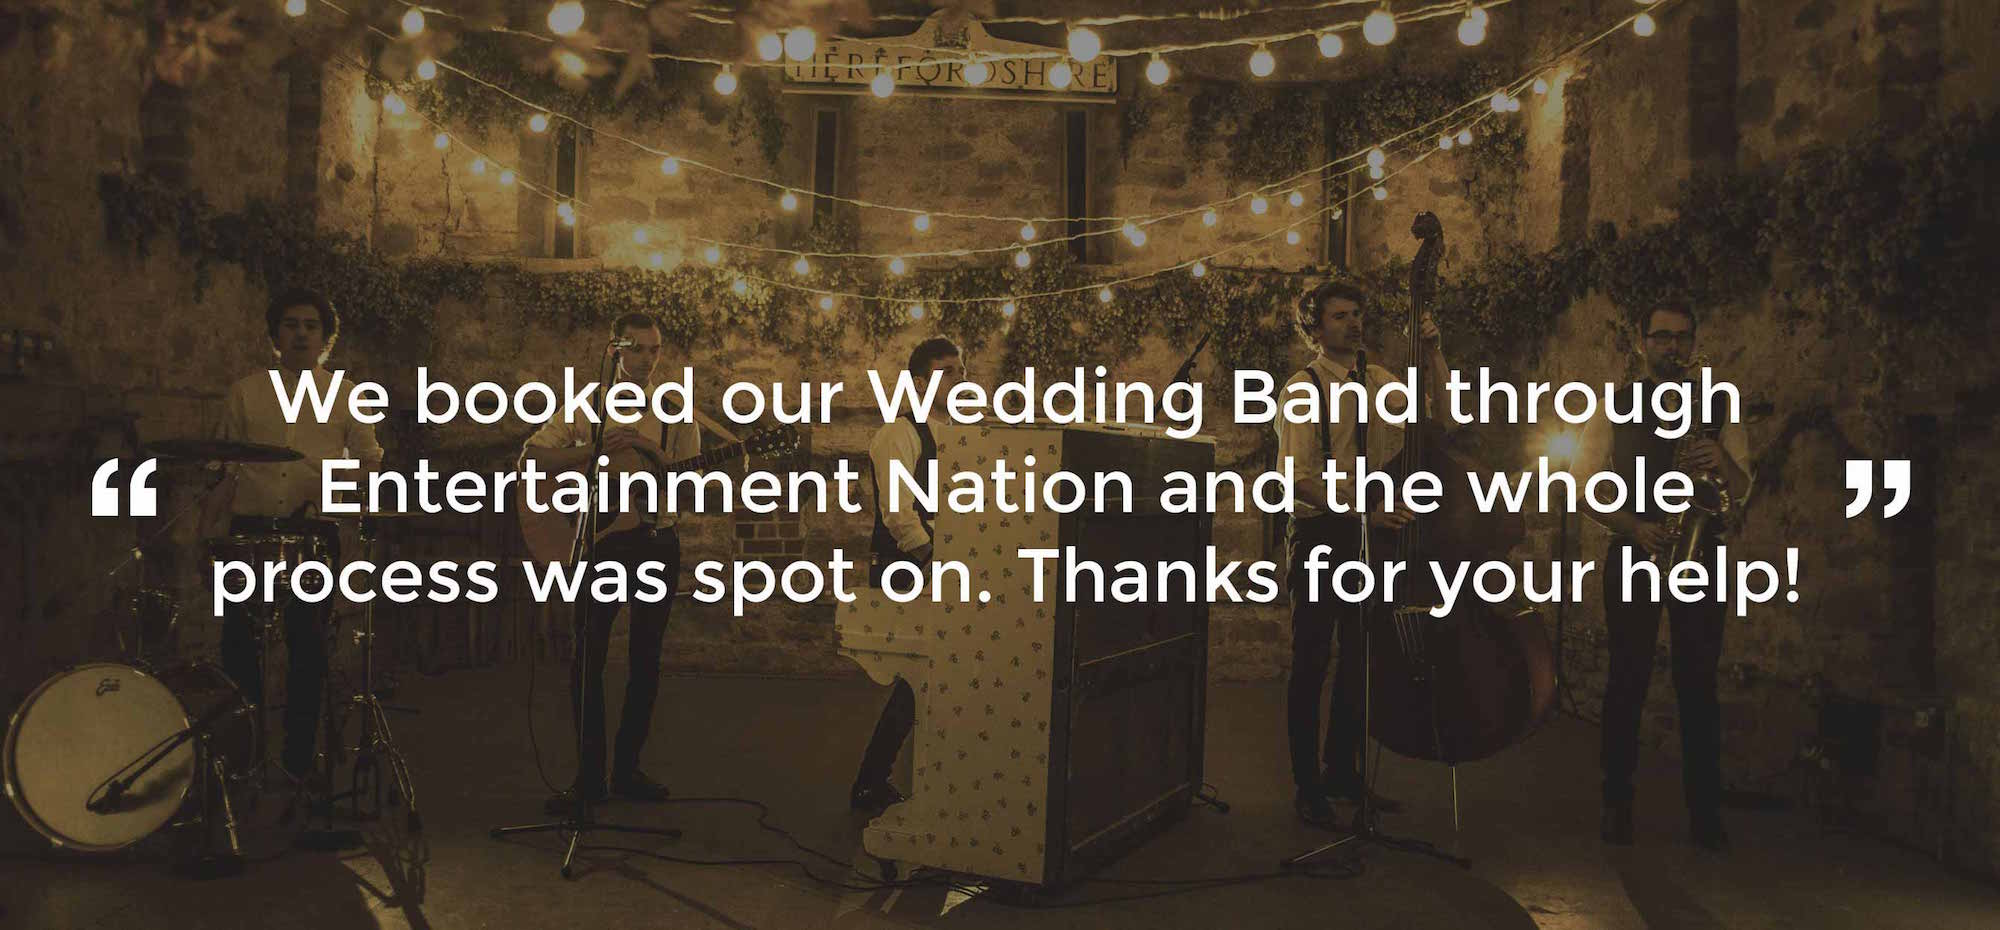 Review of Wedding Band Birmingham